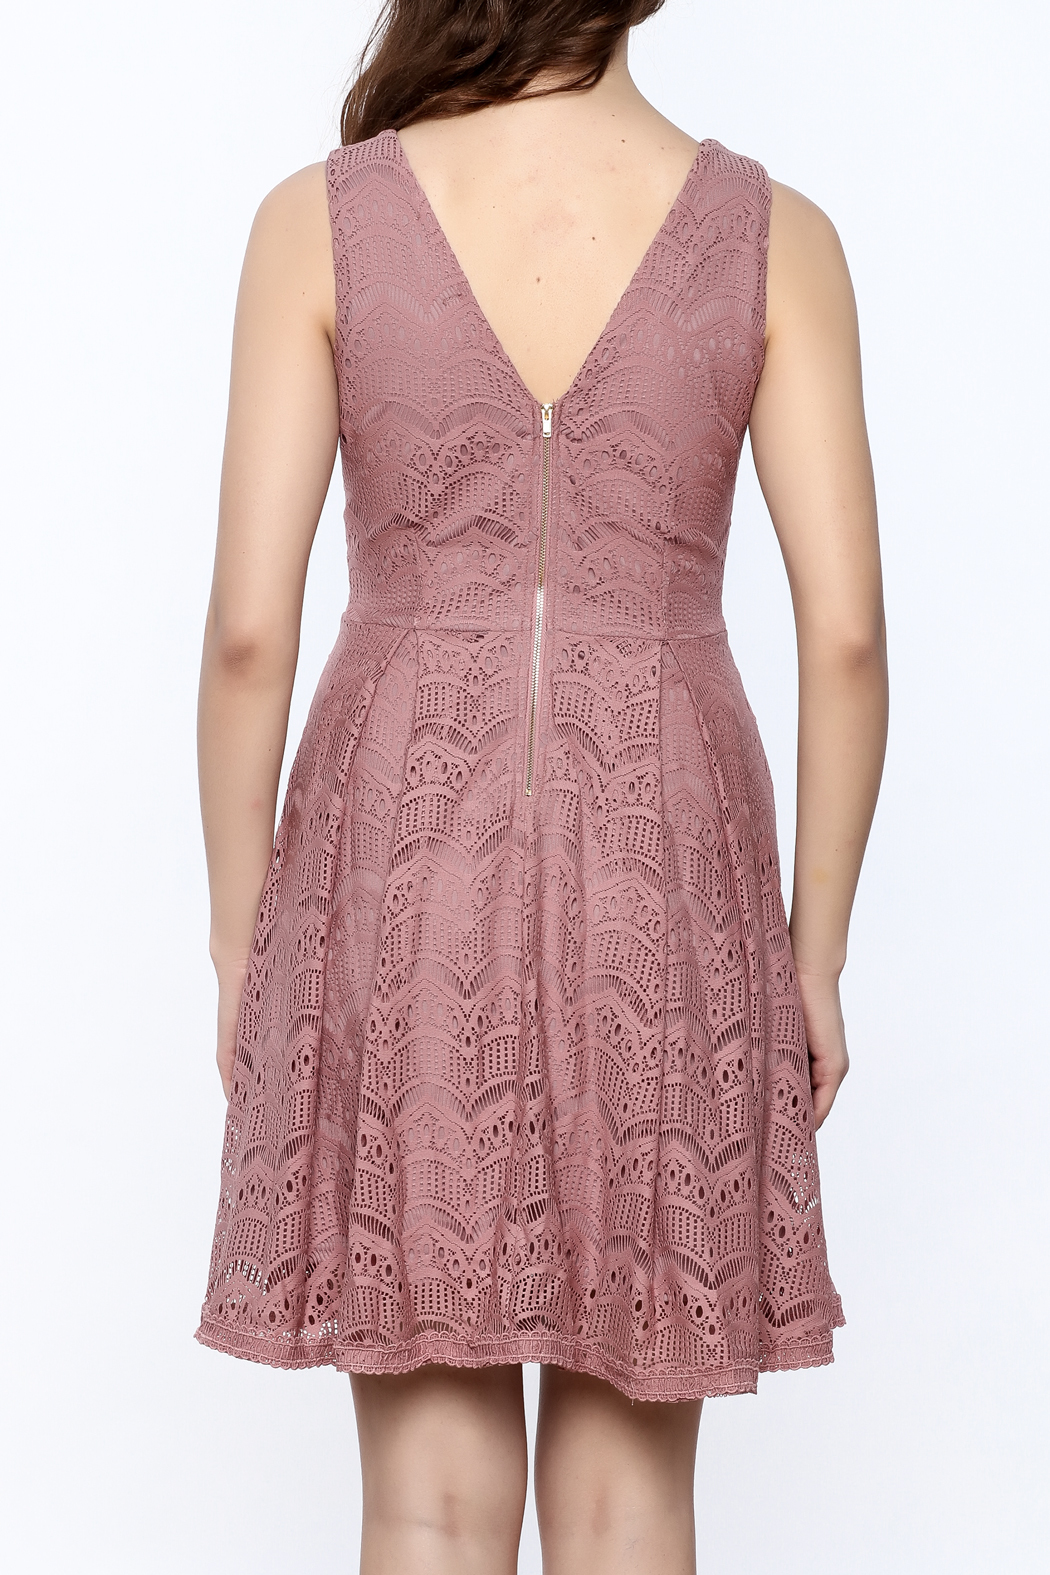 She + Sky Old Rose Lace Dress - Back Cropped Image